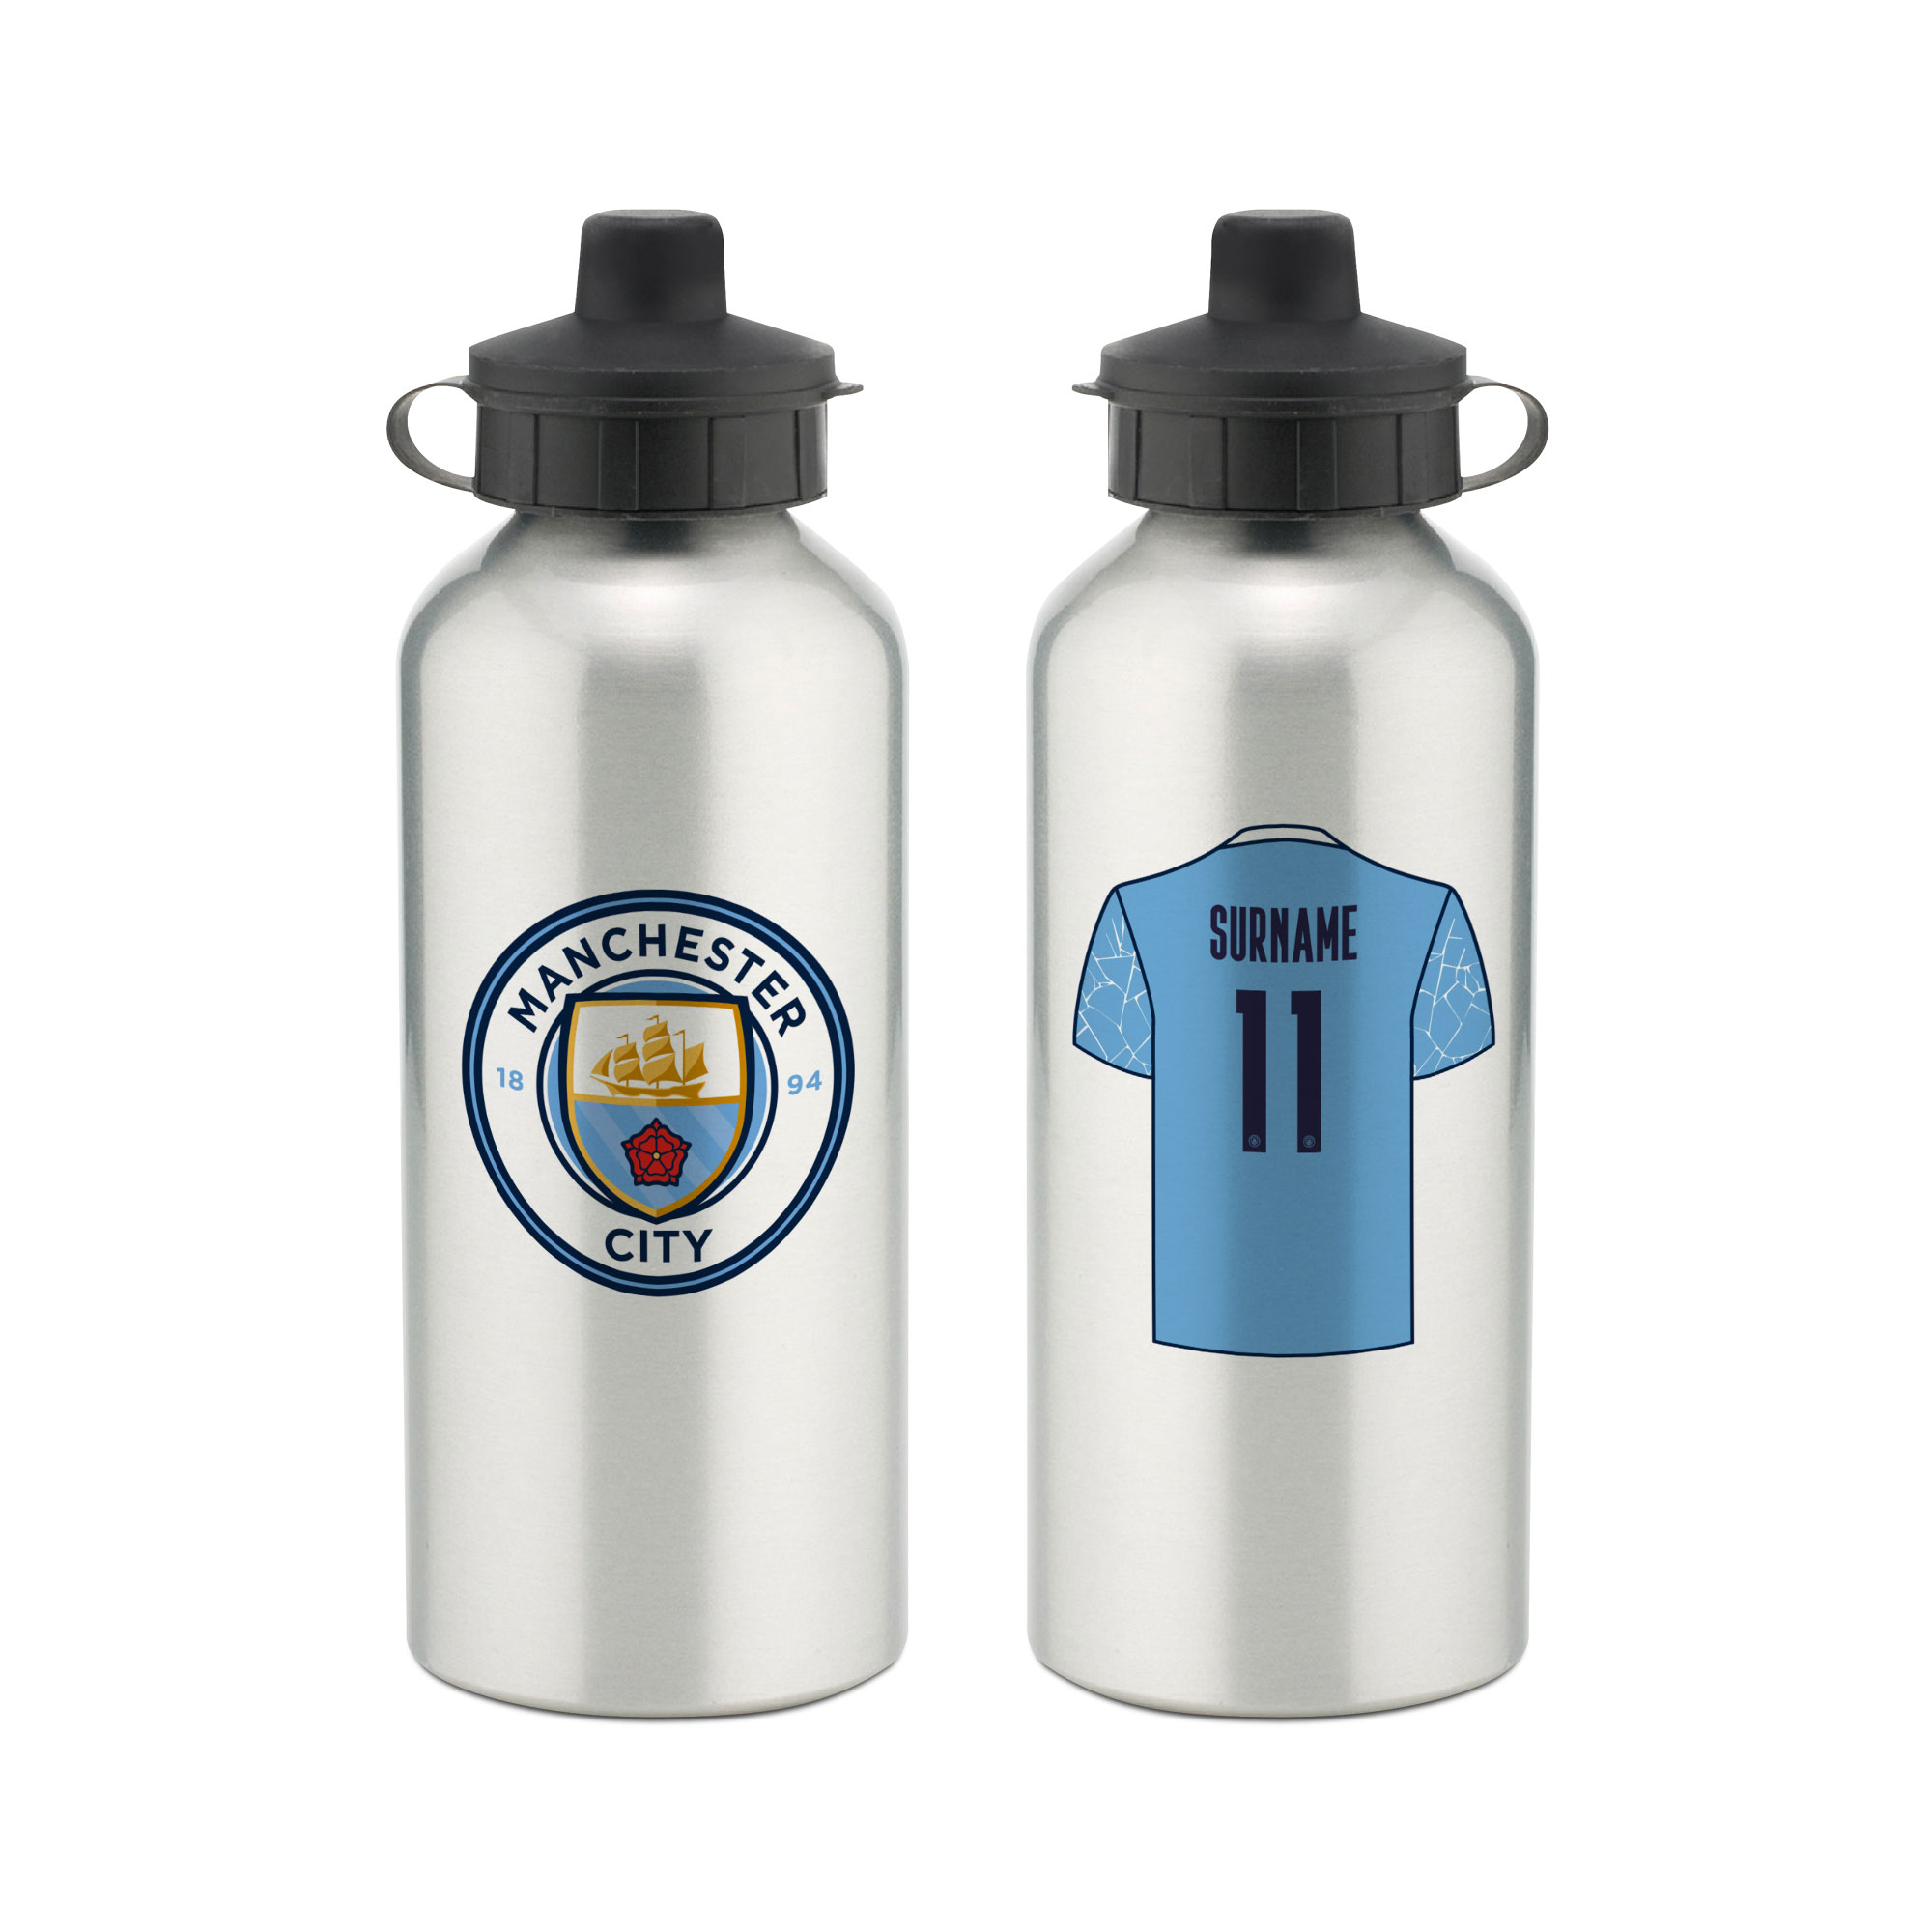 Manchester City FC Aluminium Water Bottle